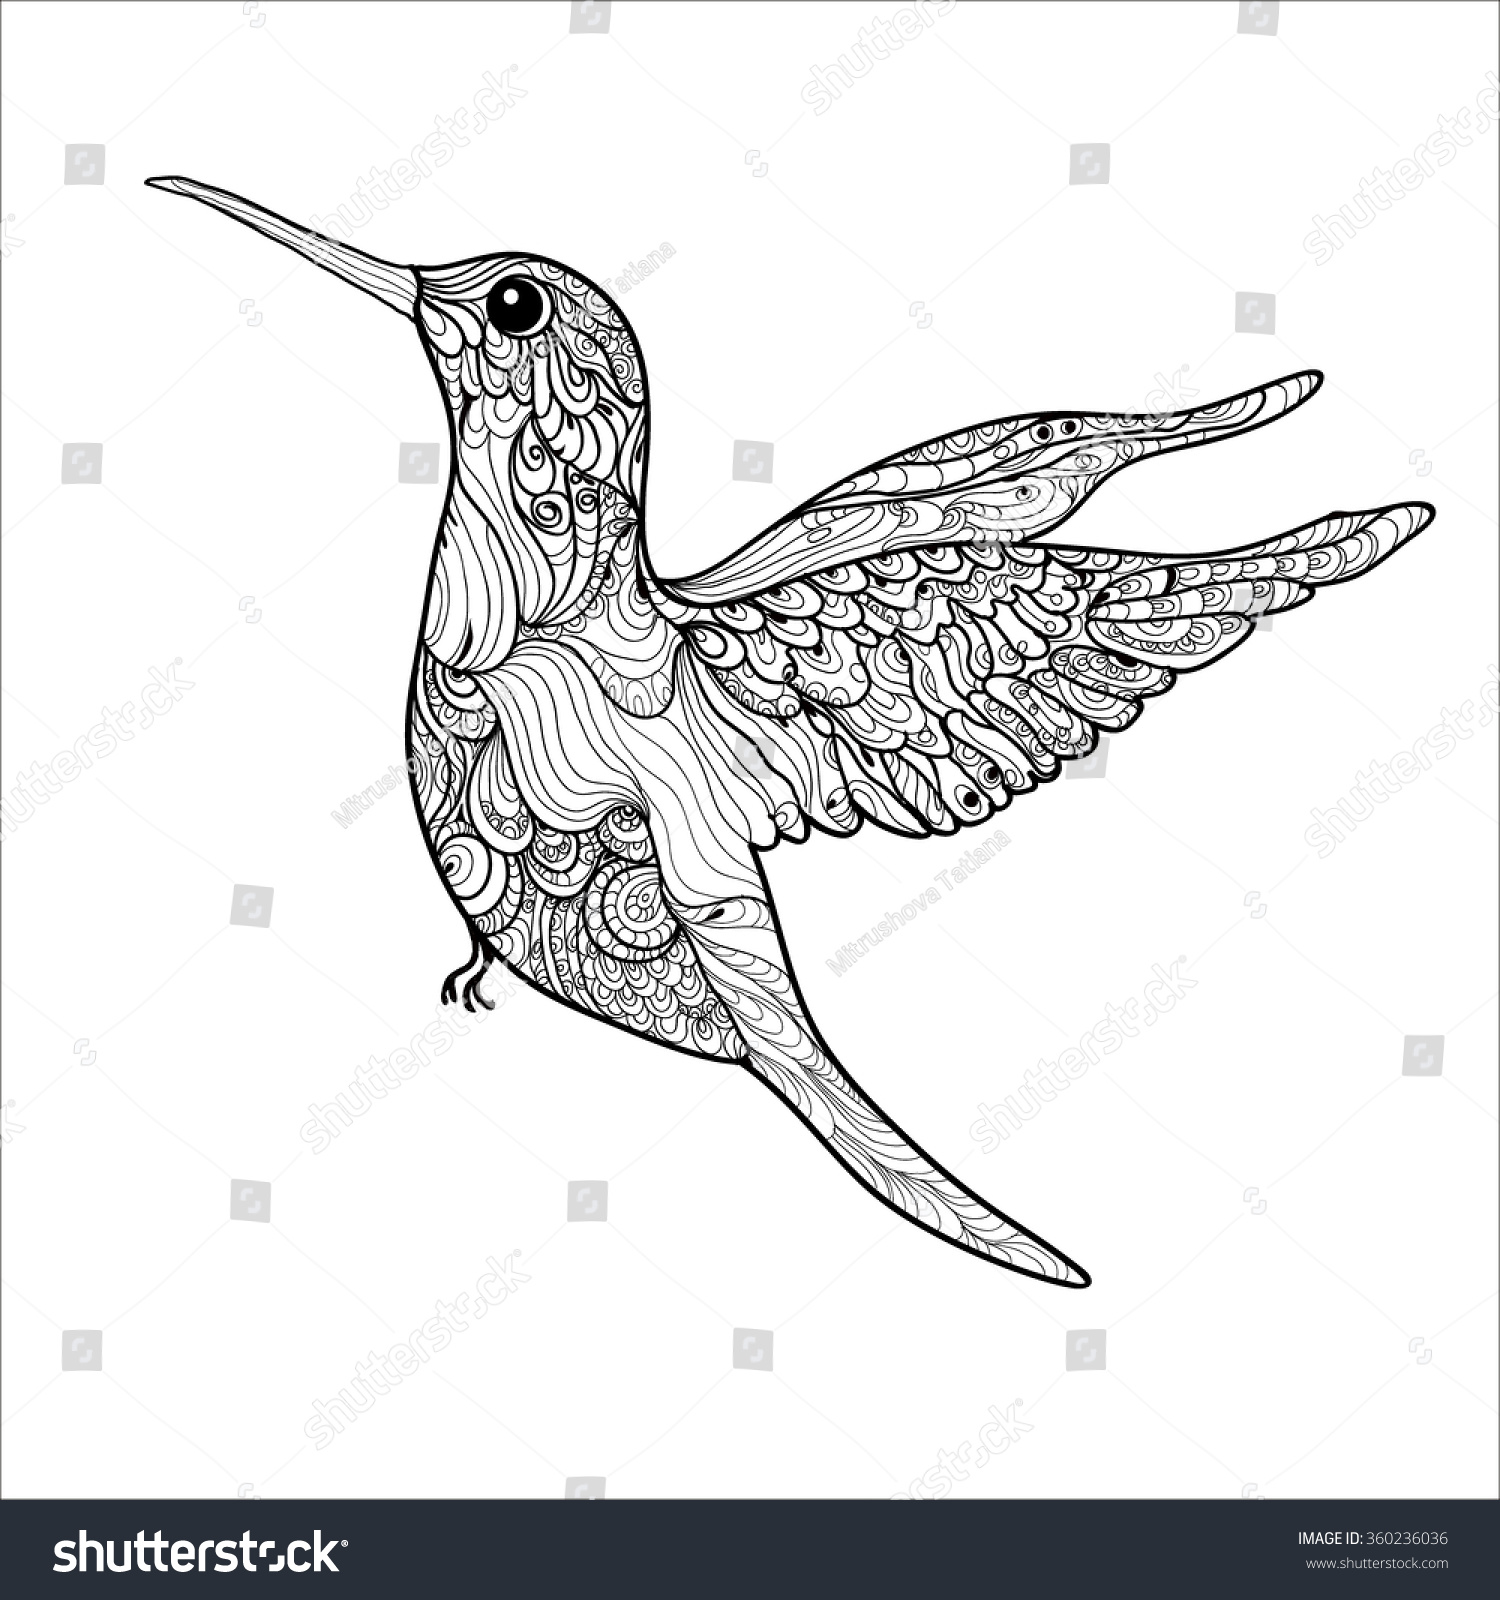 Royalty-free Coloring book pages. Hummingbird small… #360236036 ...